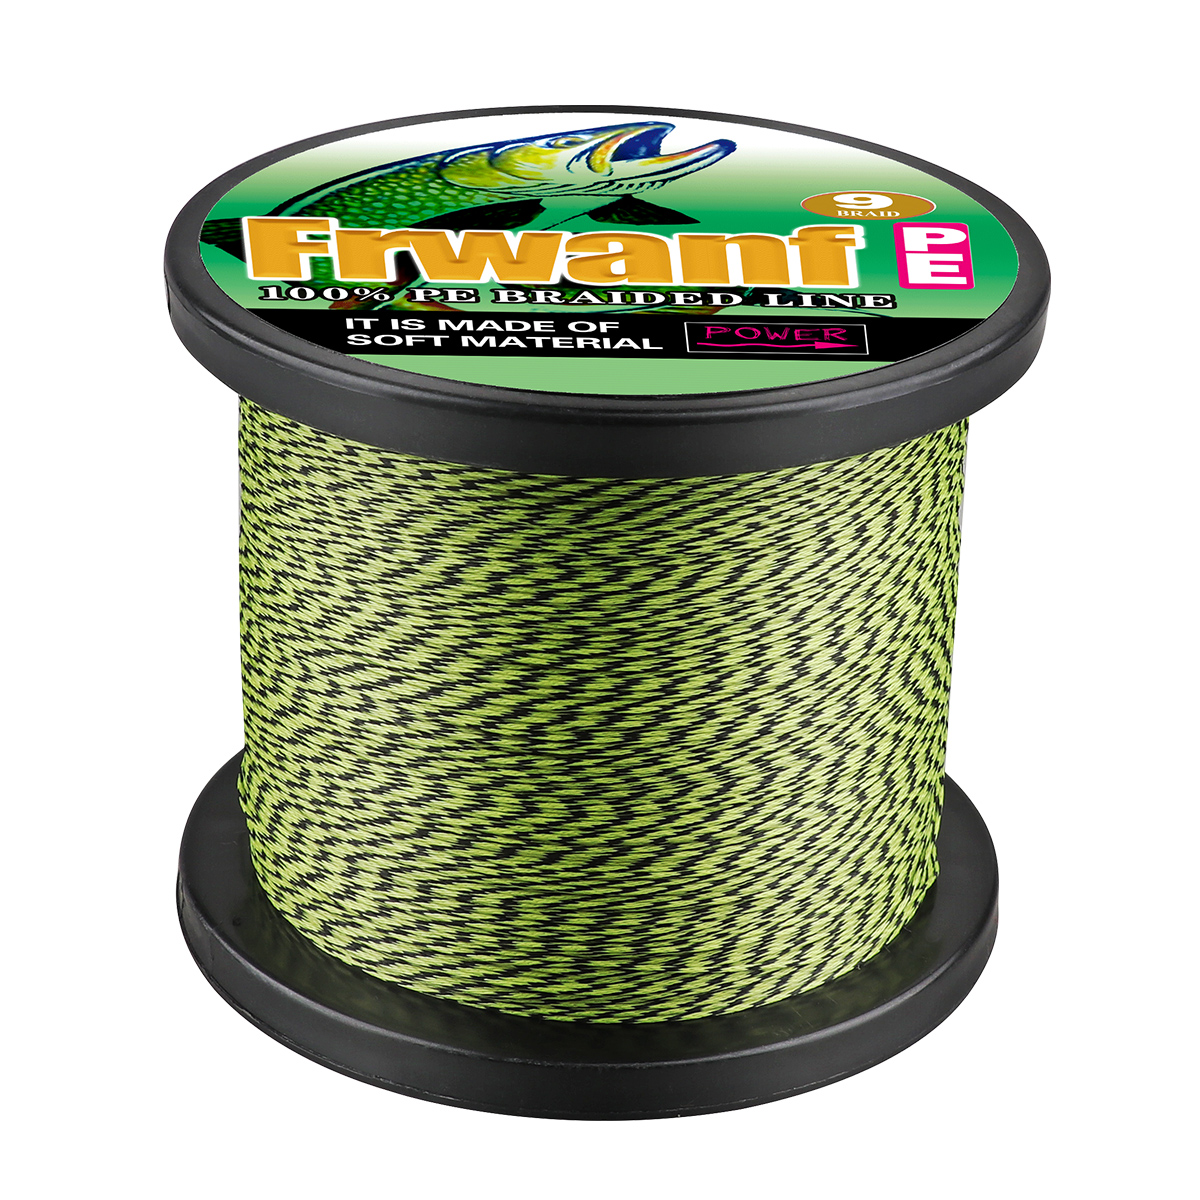 Frwanf super strong new braided fishing line 1500m 2000m spot line mix color 9 Strands 0 14 0 16 0 20 0 23 0 26 0 30 0 32 0 50mm in Fishing Lines from Sports Entertainment